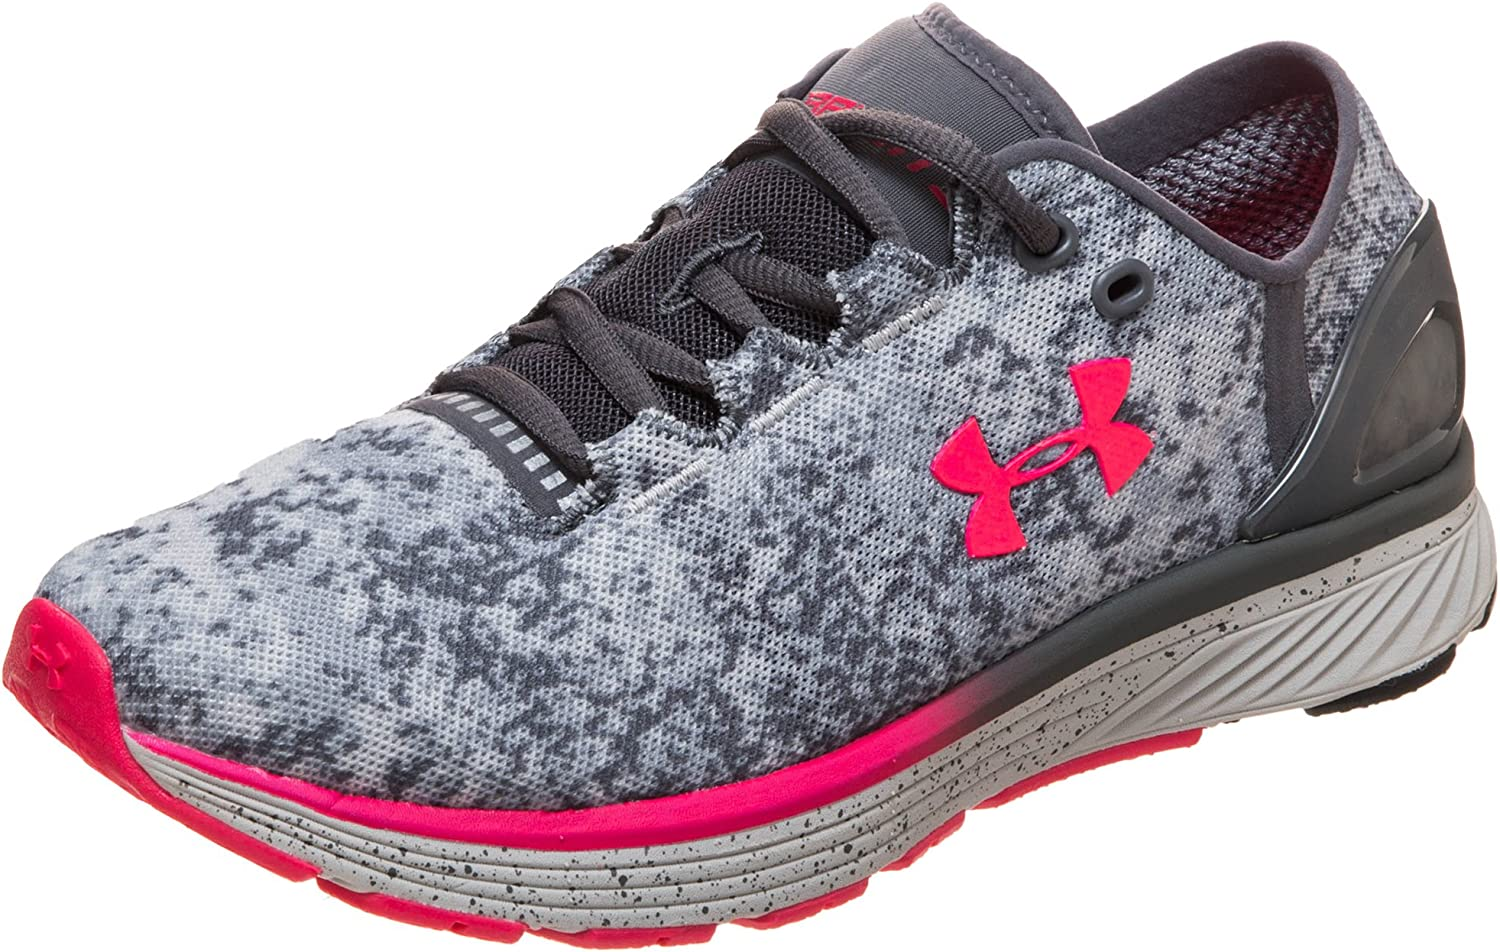 Under Armour UA W Charged Bandit 3 Digi, Zapatillas de Running para Mujer: Amazon.es: Zapatos y complementos